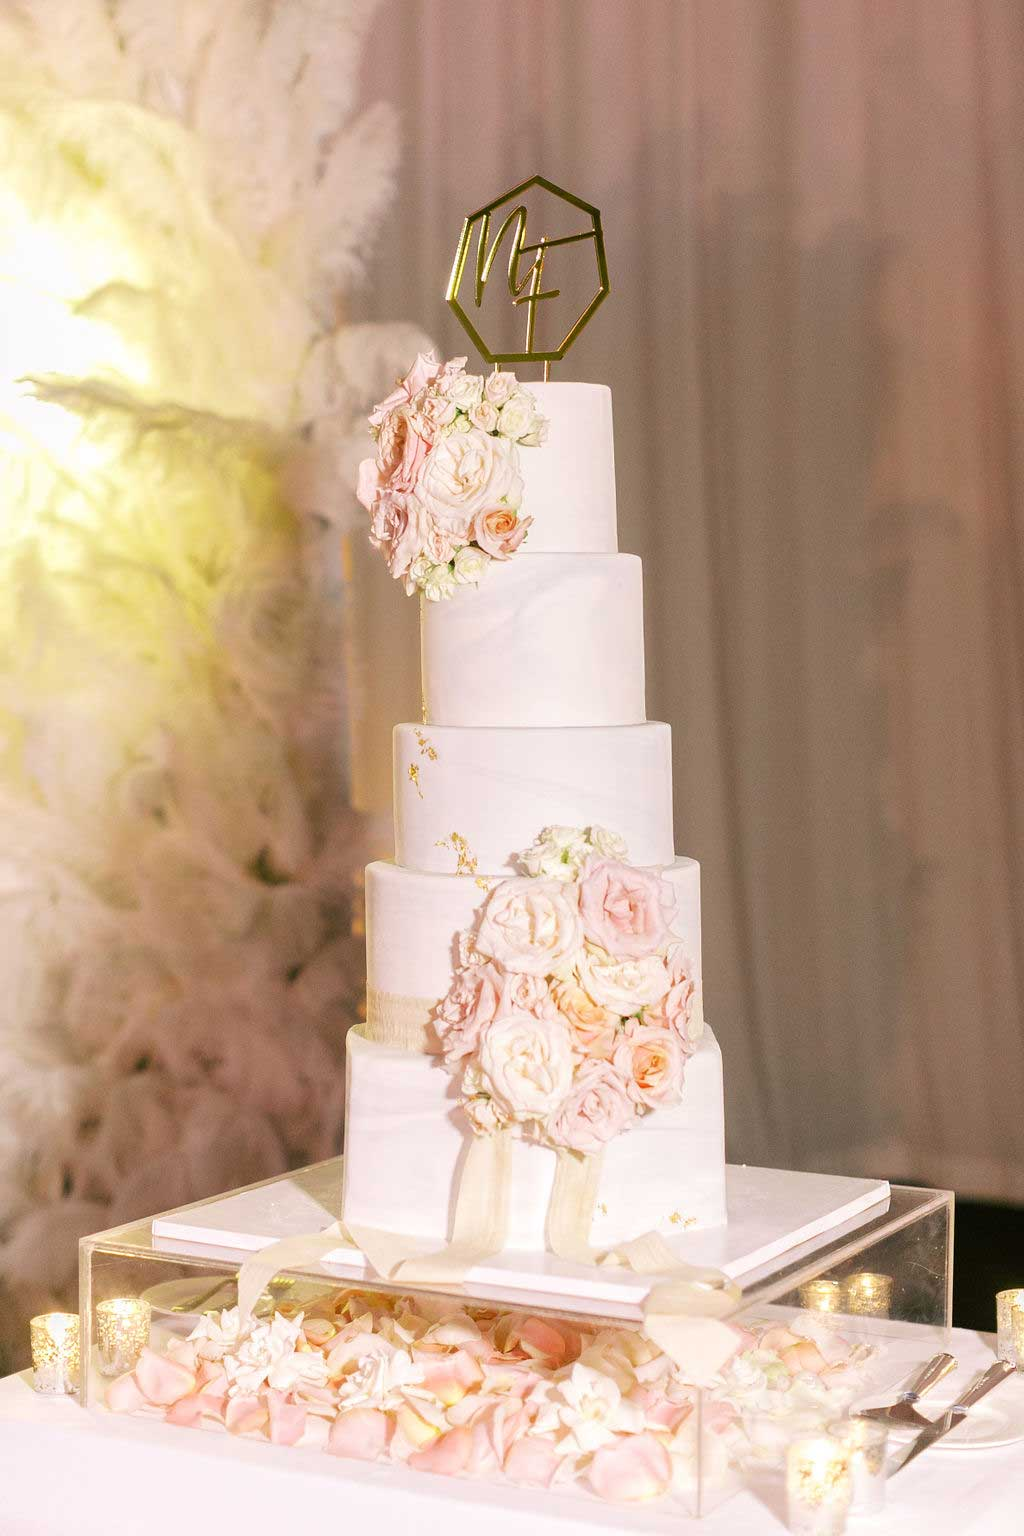 side angle of the five tiered wedding cake